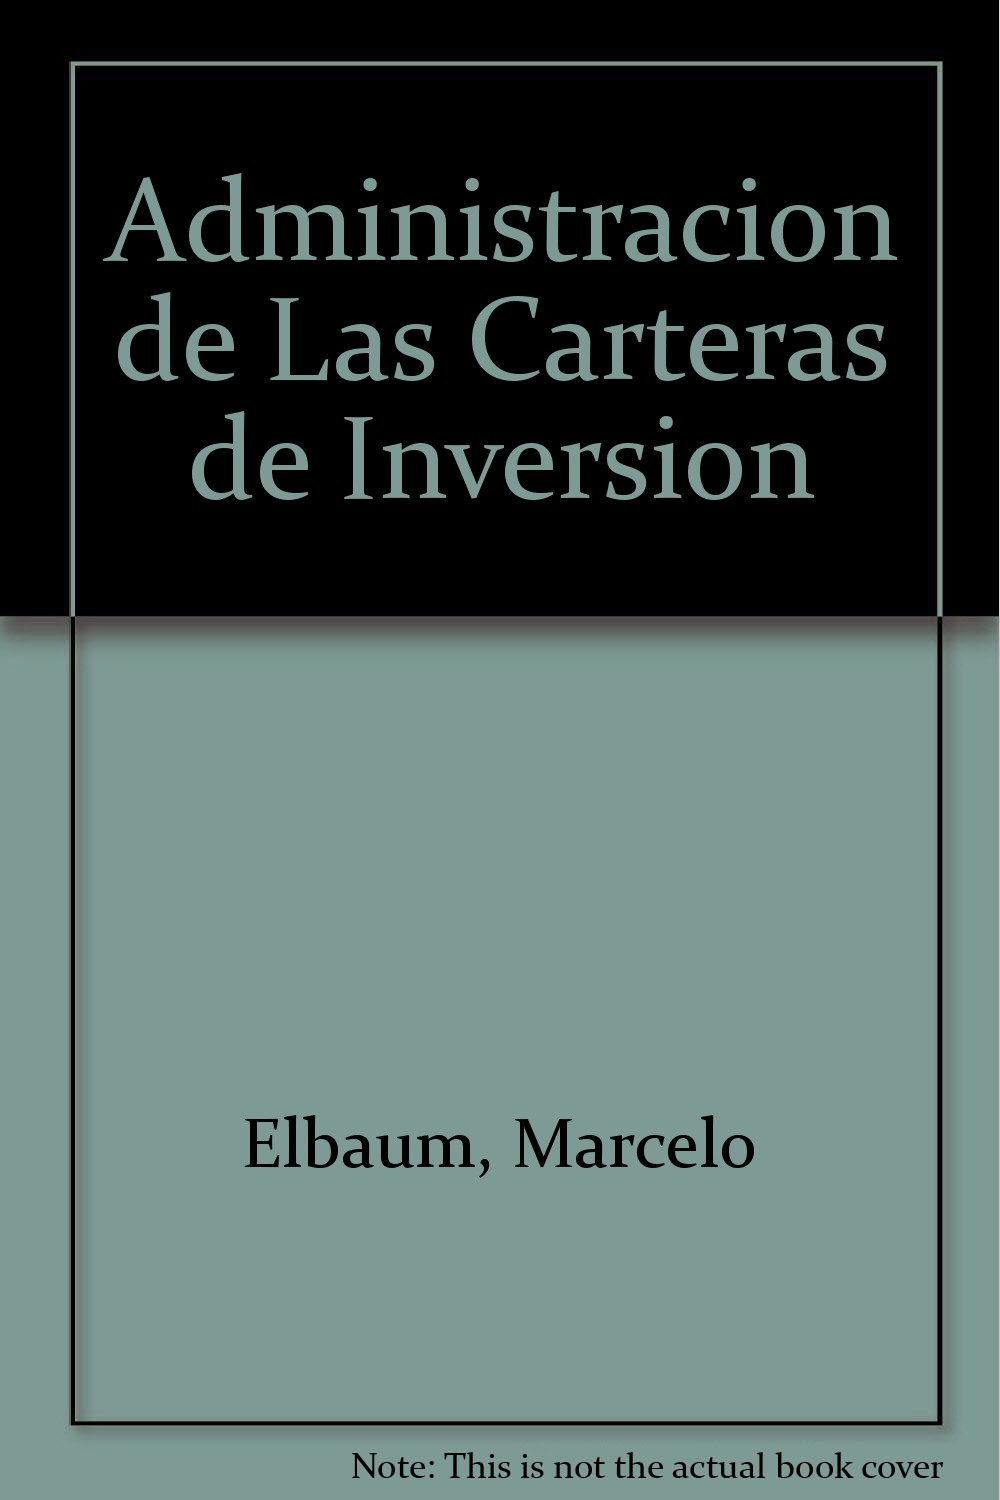 Administracion de Las Carteras de Inversion (Spanish Edition) (Spanish) Paperback – November, 2004